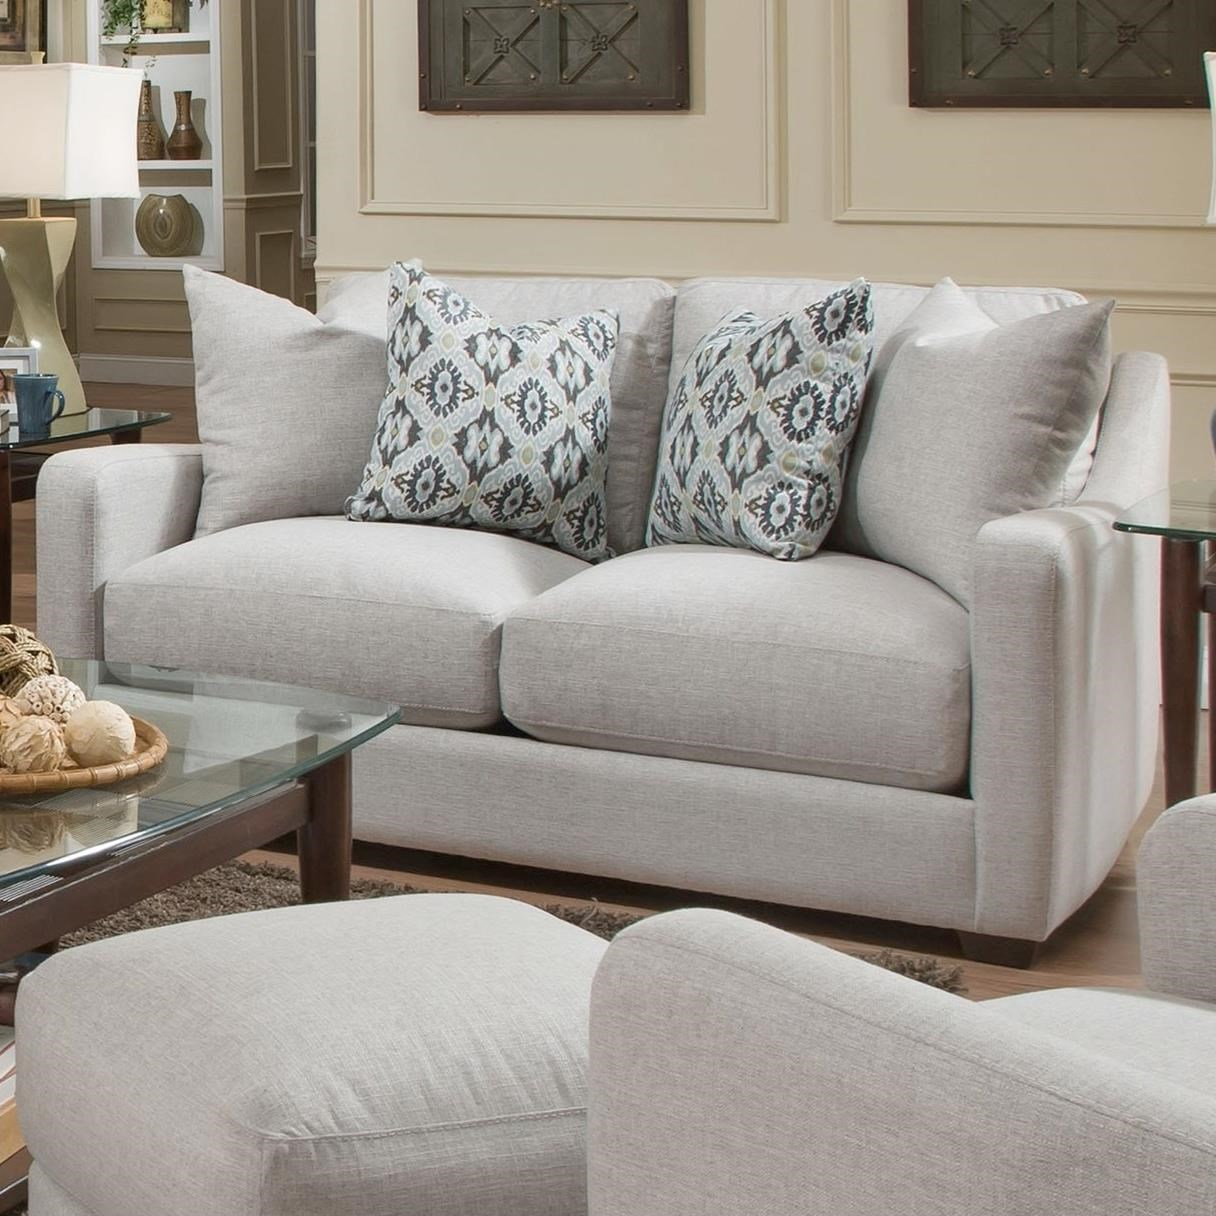 885 Loveseat by Franklin at Wilcox Furniture